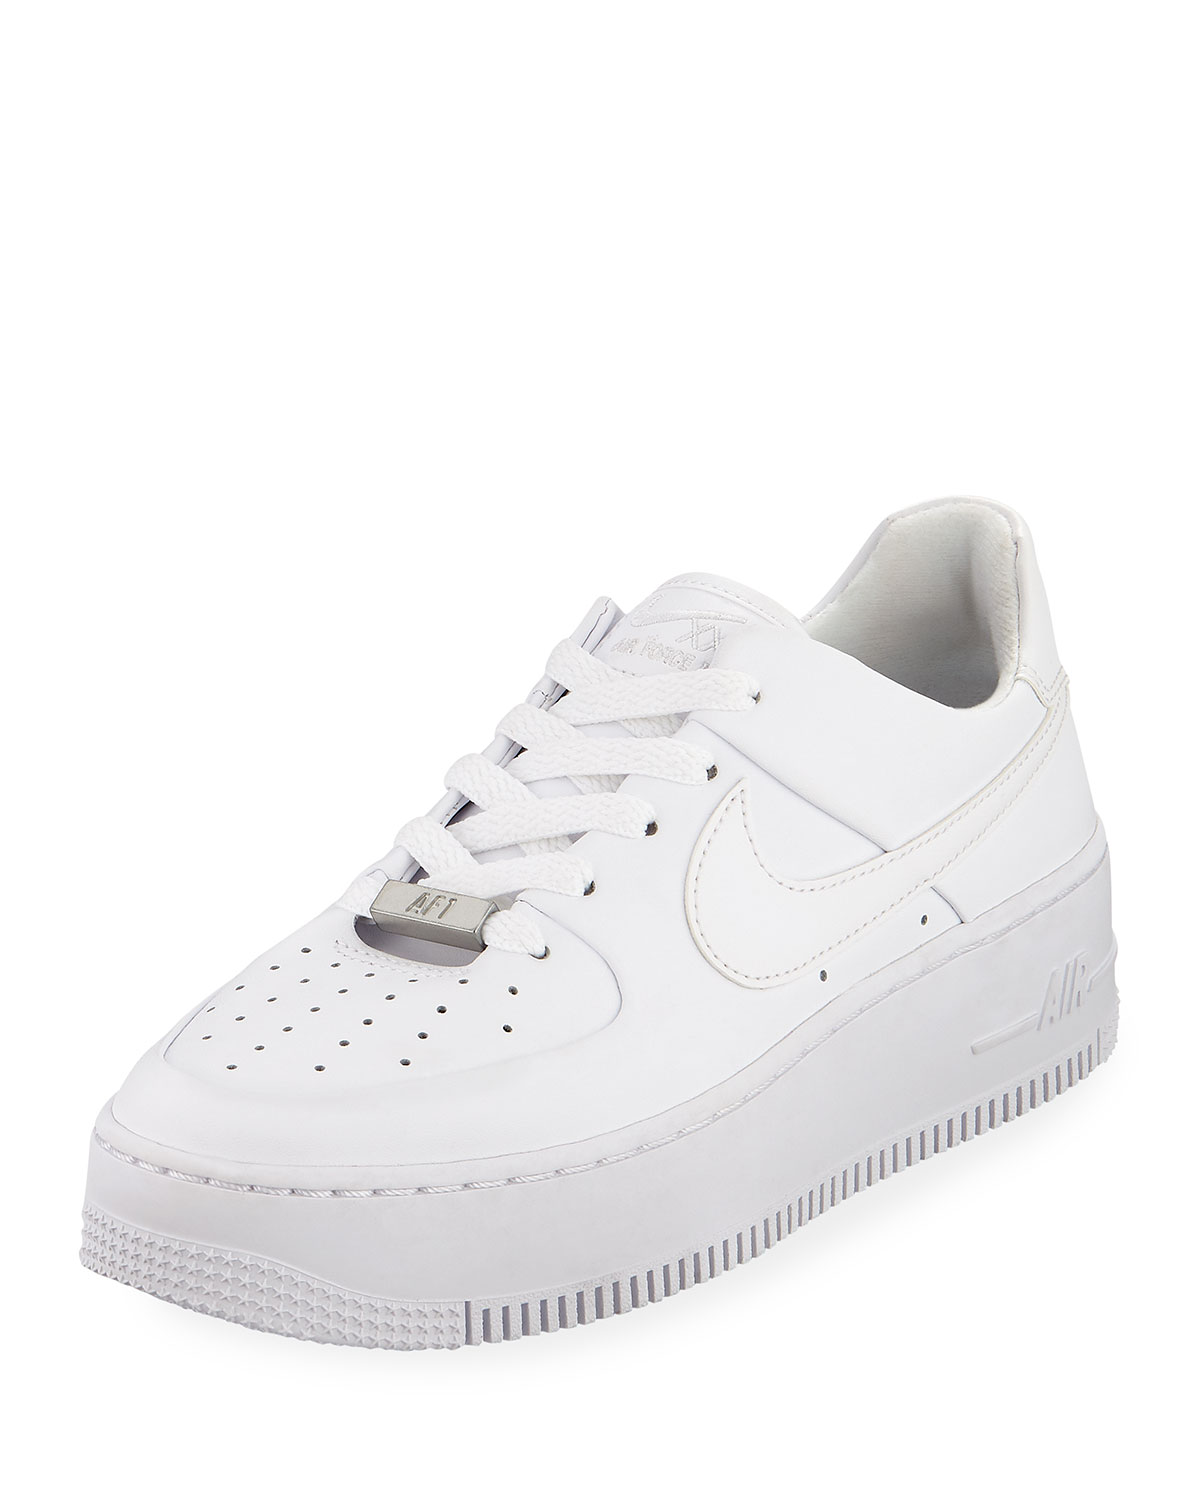 f21741072beb5 Nike Air Force 1 Sage Low-Top Sneakers